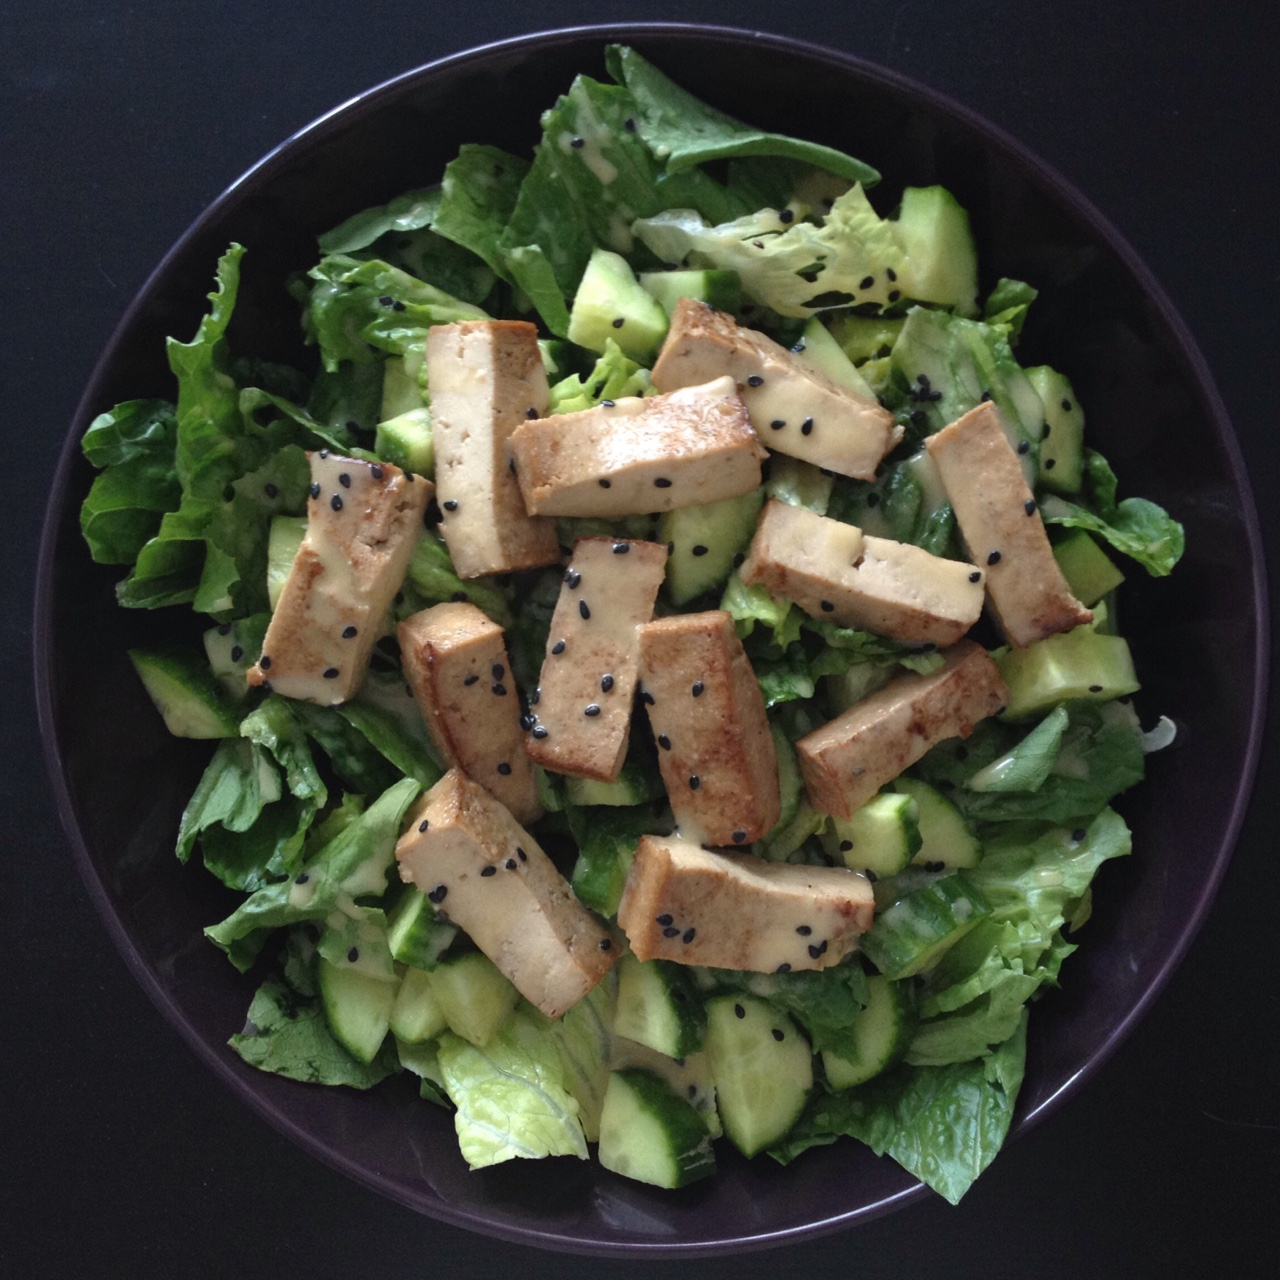 Marinated Tofu & Cucumber Salad with Sesame Miso Dressing